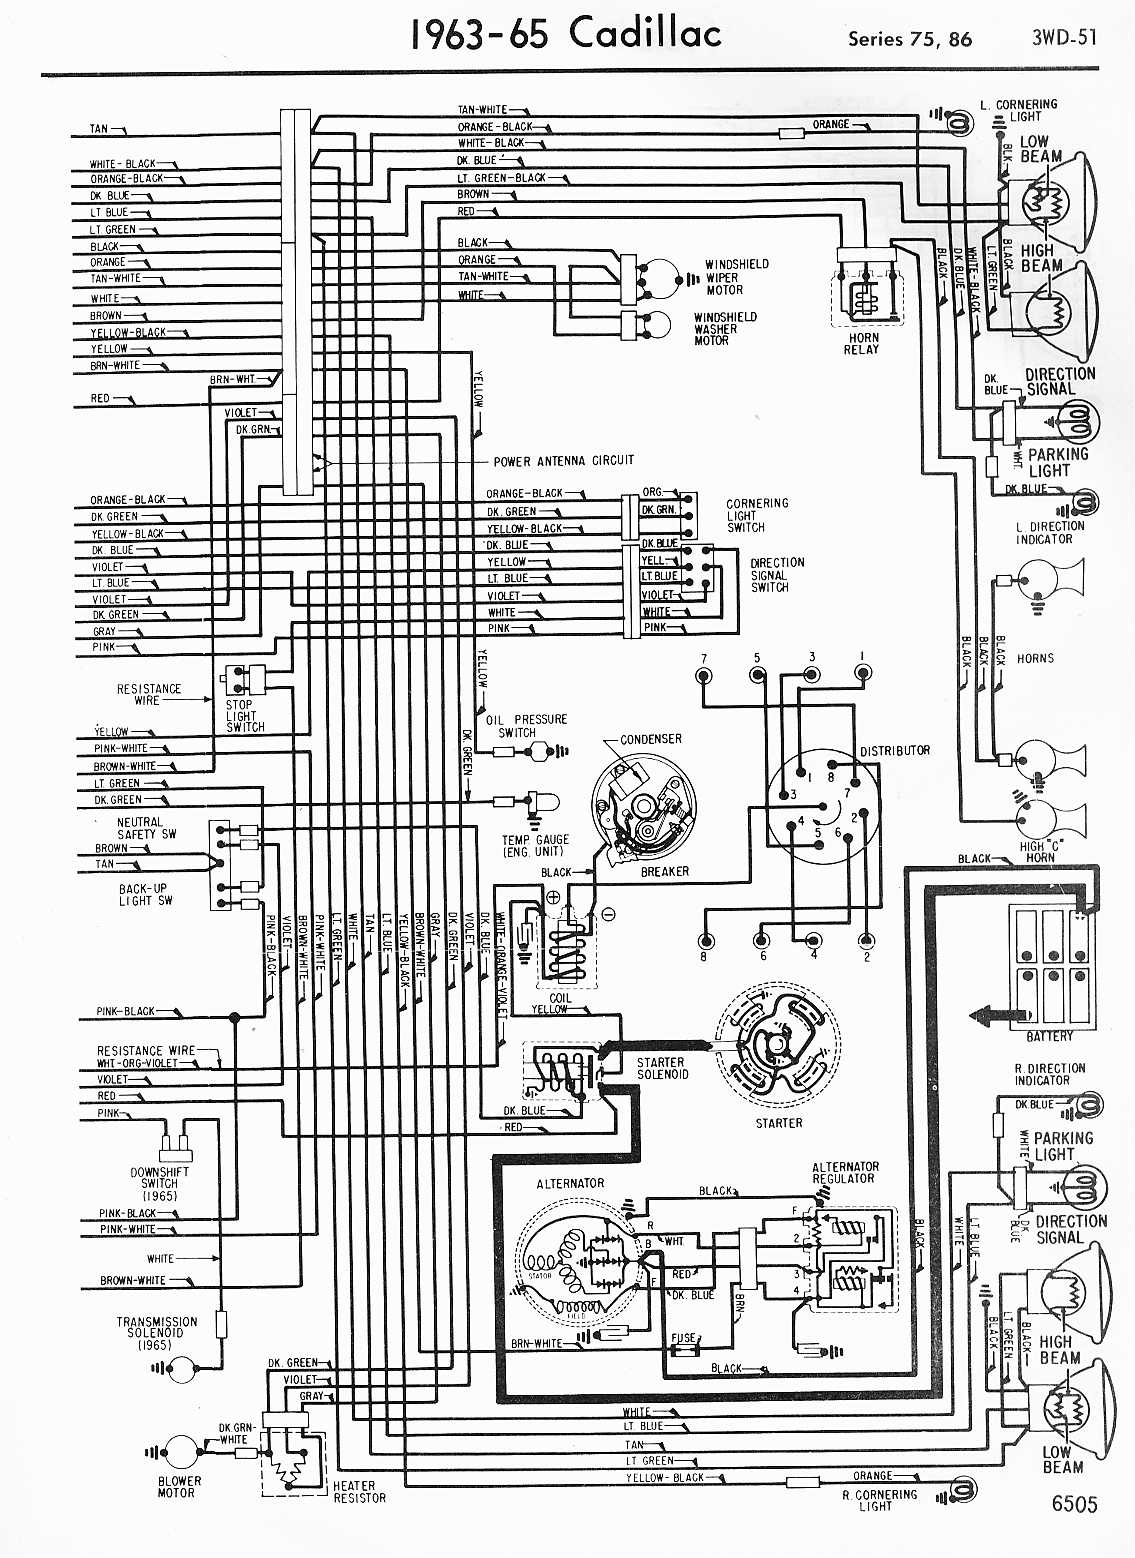 File corvair turbo engine furthermore 1934 Plymouth Wiring Diagram Free Engine Image For moreover Gm 6 2 Liter V8 Small Block Ls3 Engine likewise 2015 Dodge Ram Towing Capacity Chart besides 1949 Cadillac Wiring Harness New. on 62 chevy truck wiring diagram